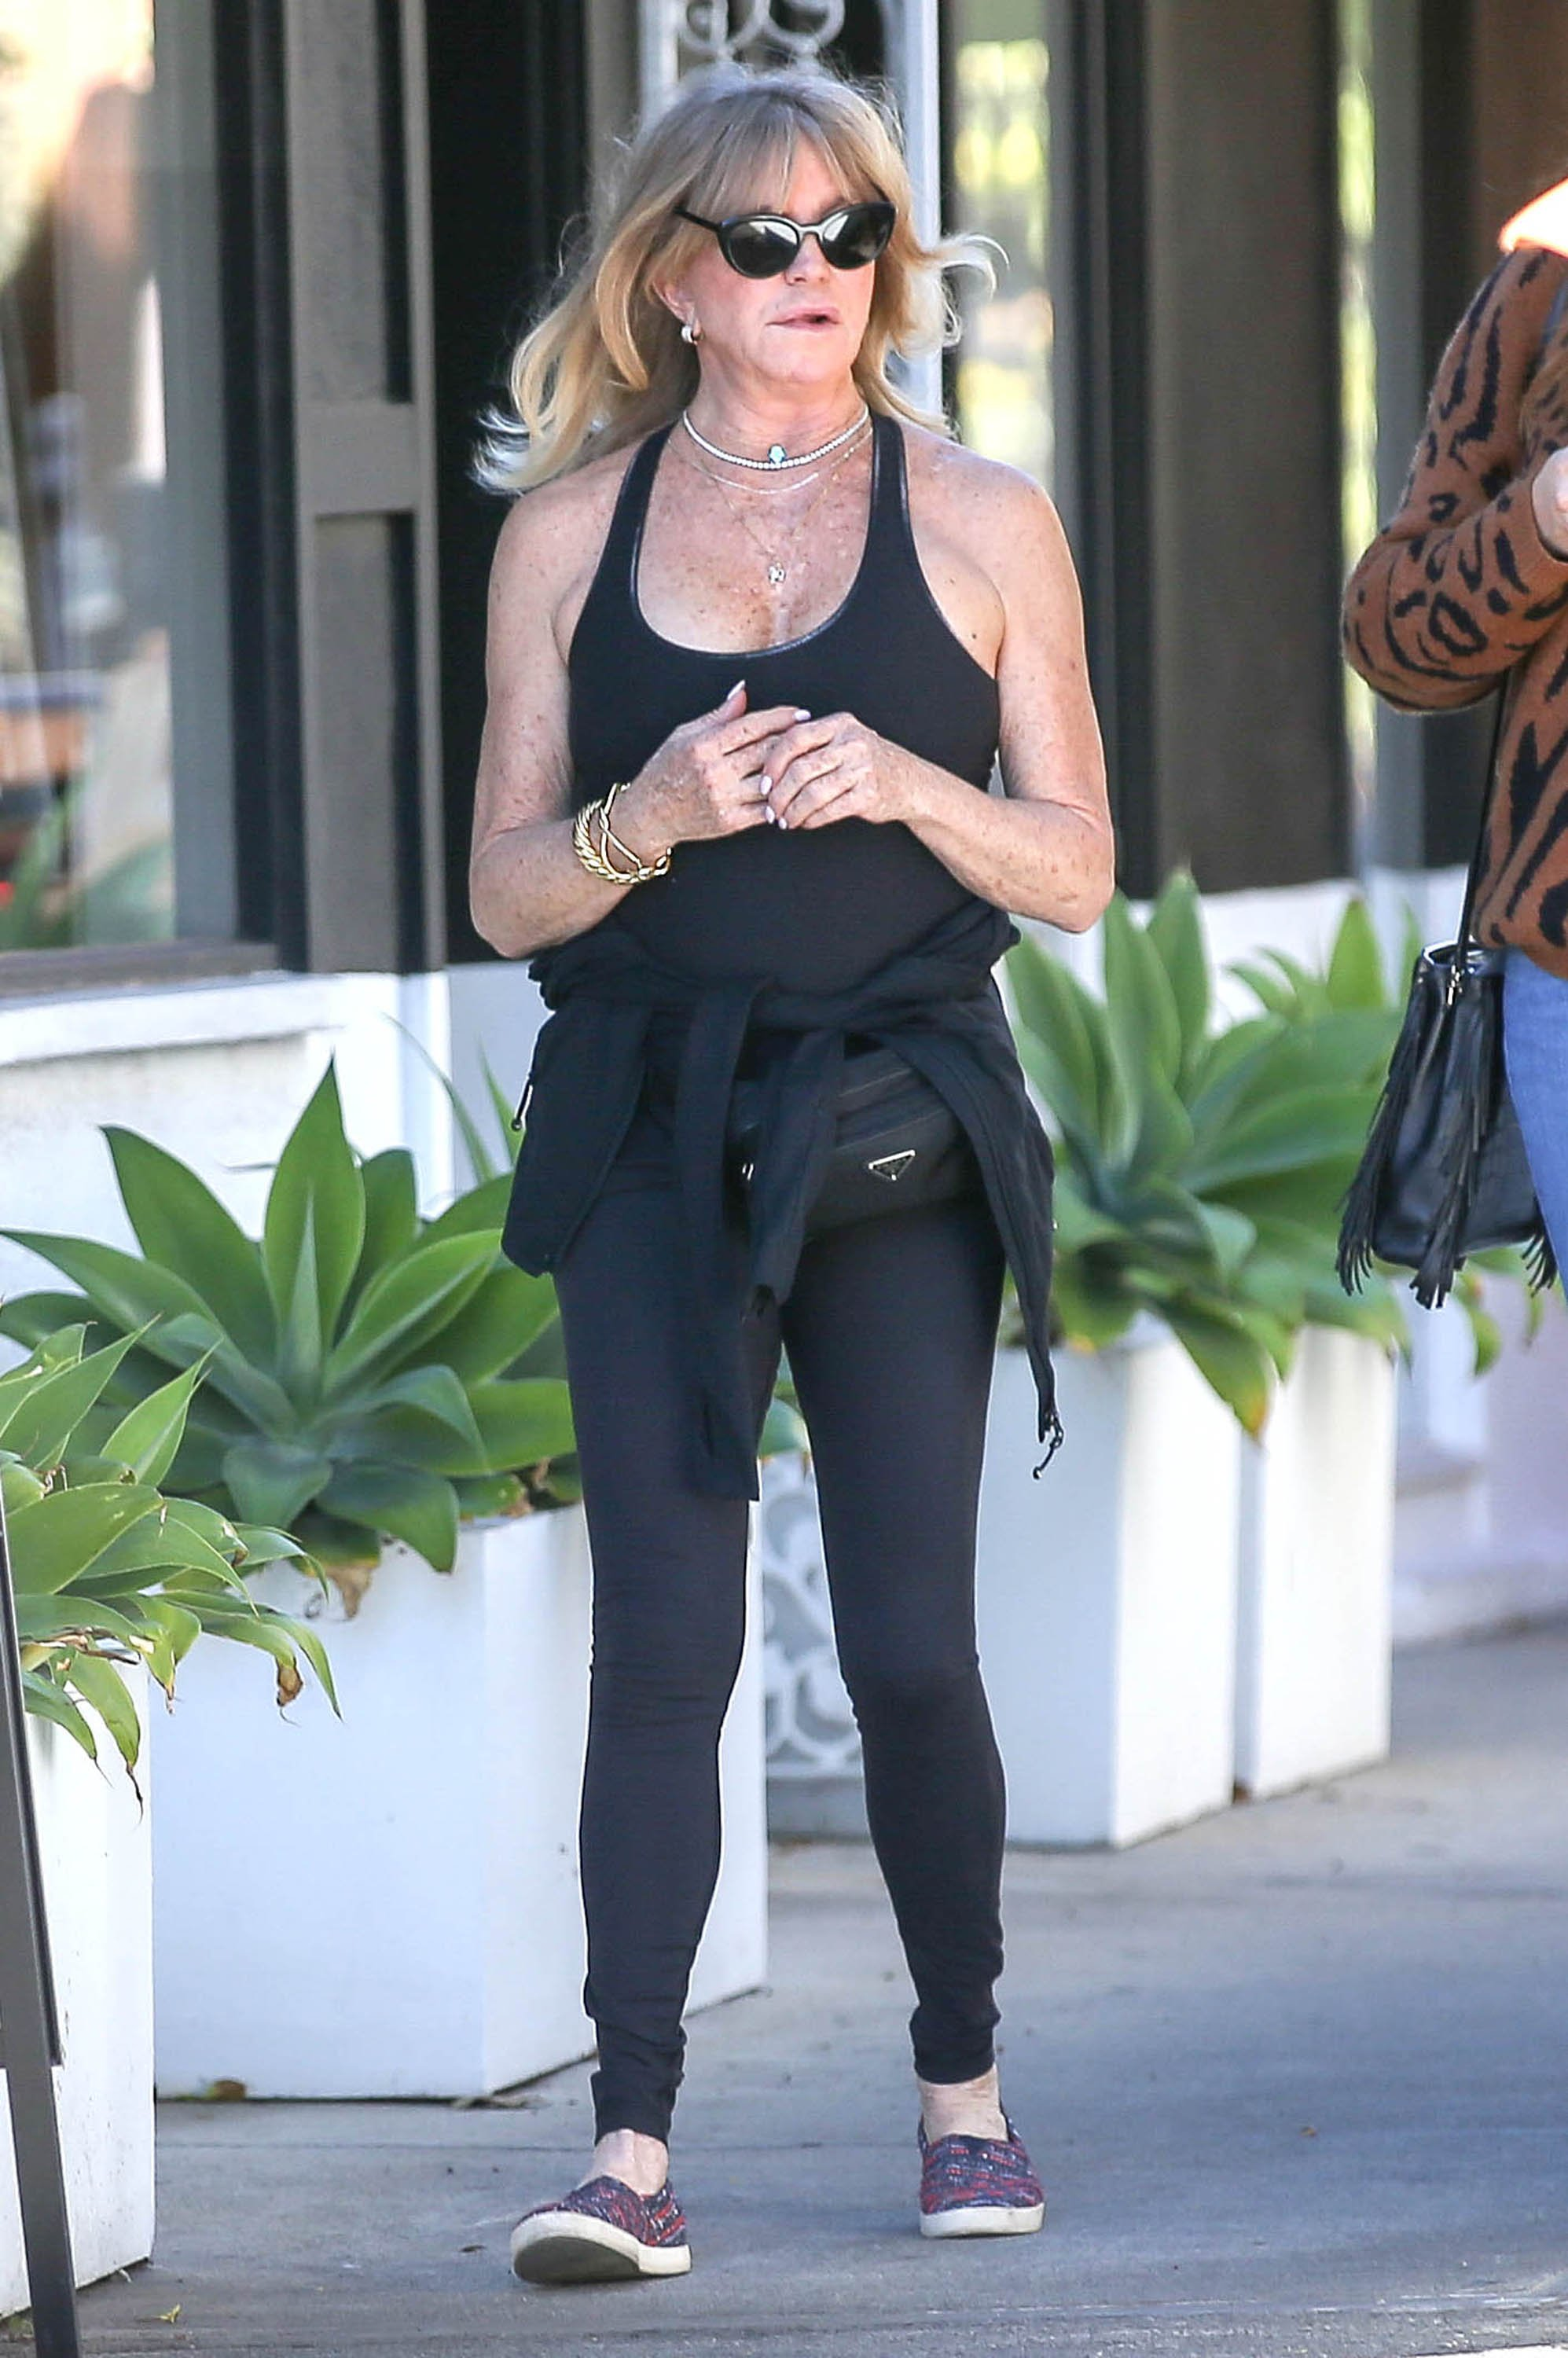 Goldie Hawn is seen on January 6, 2020 in Los Angeles, California.  Source: Getty Images